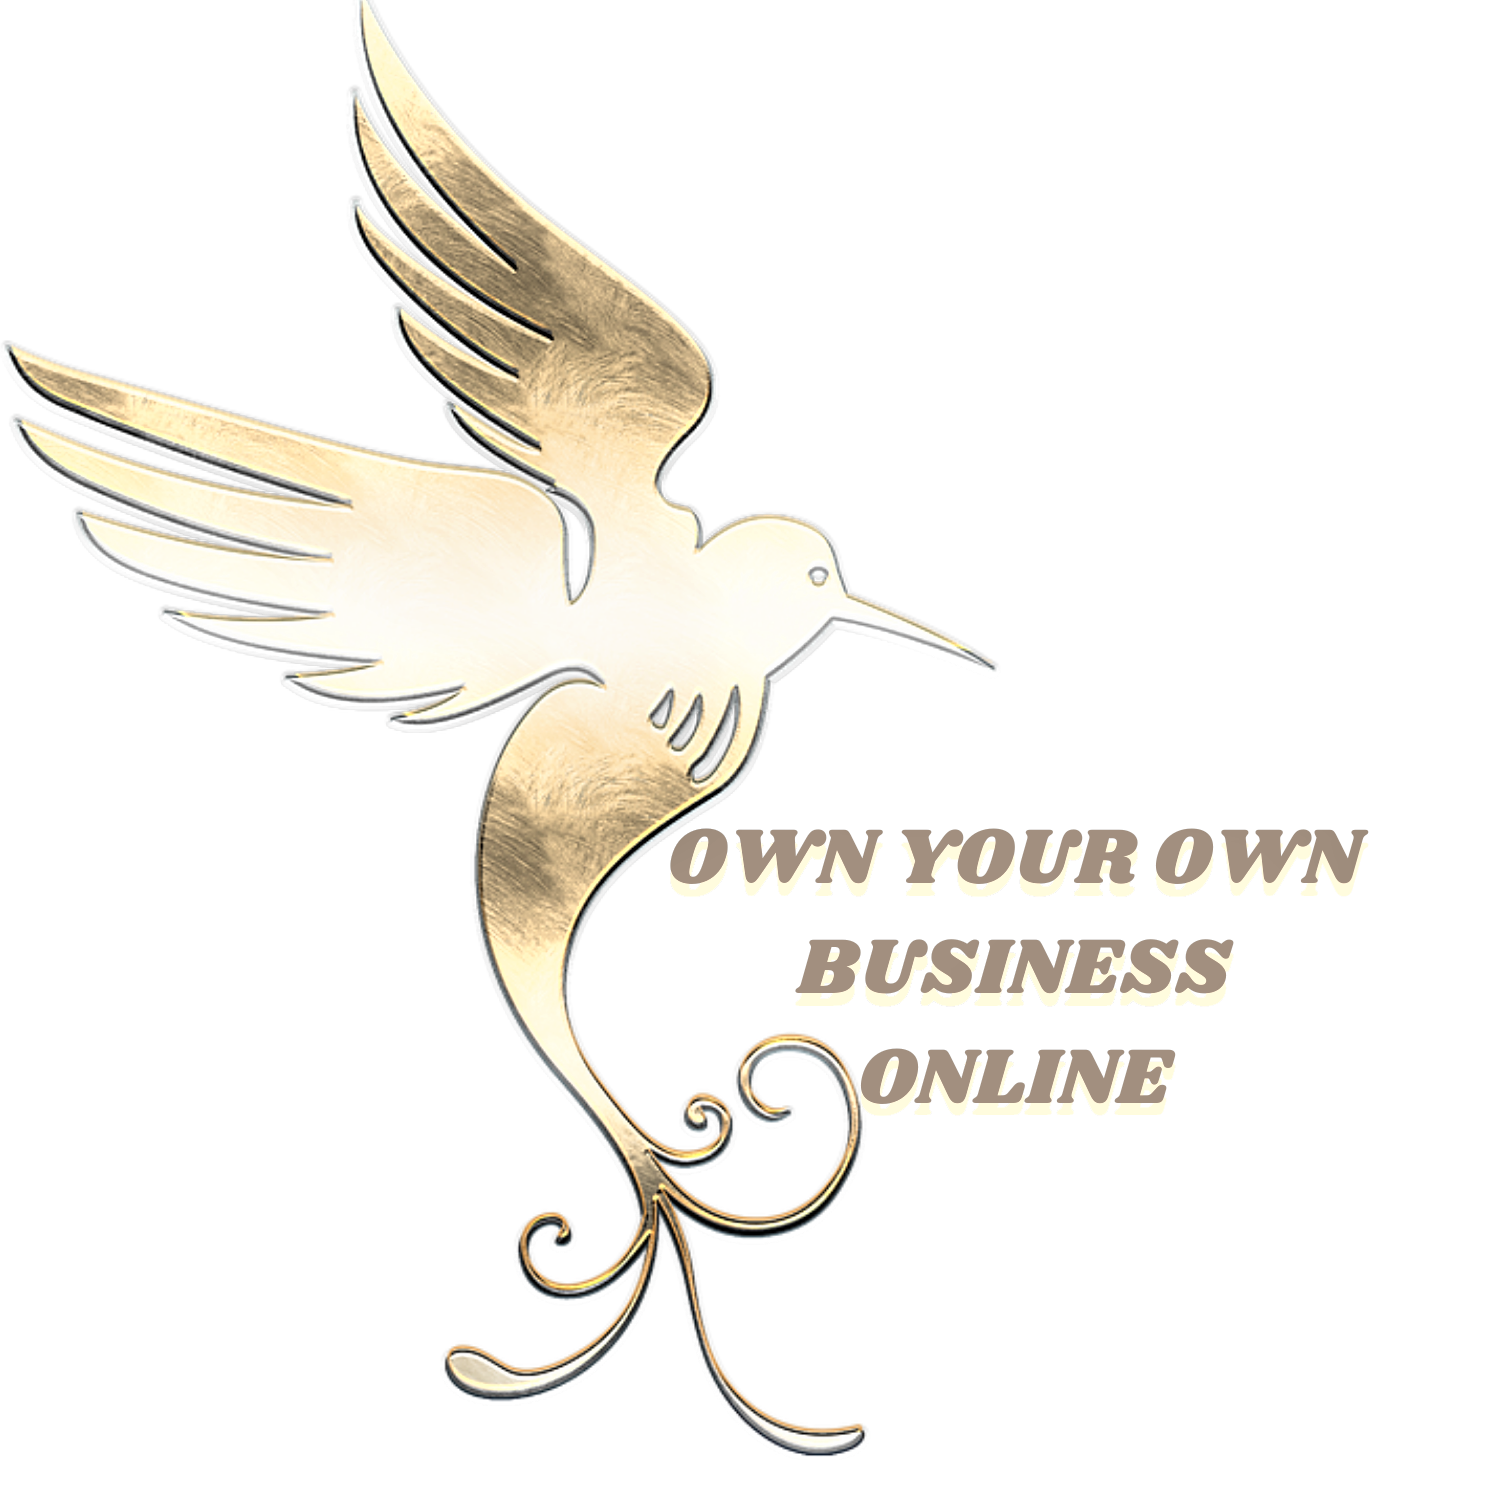 Own Your Own Business Online.